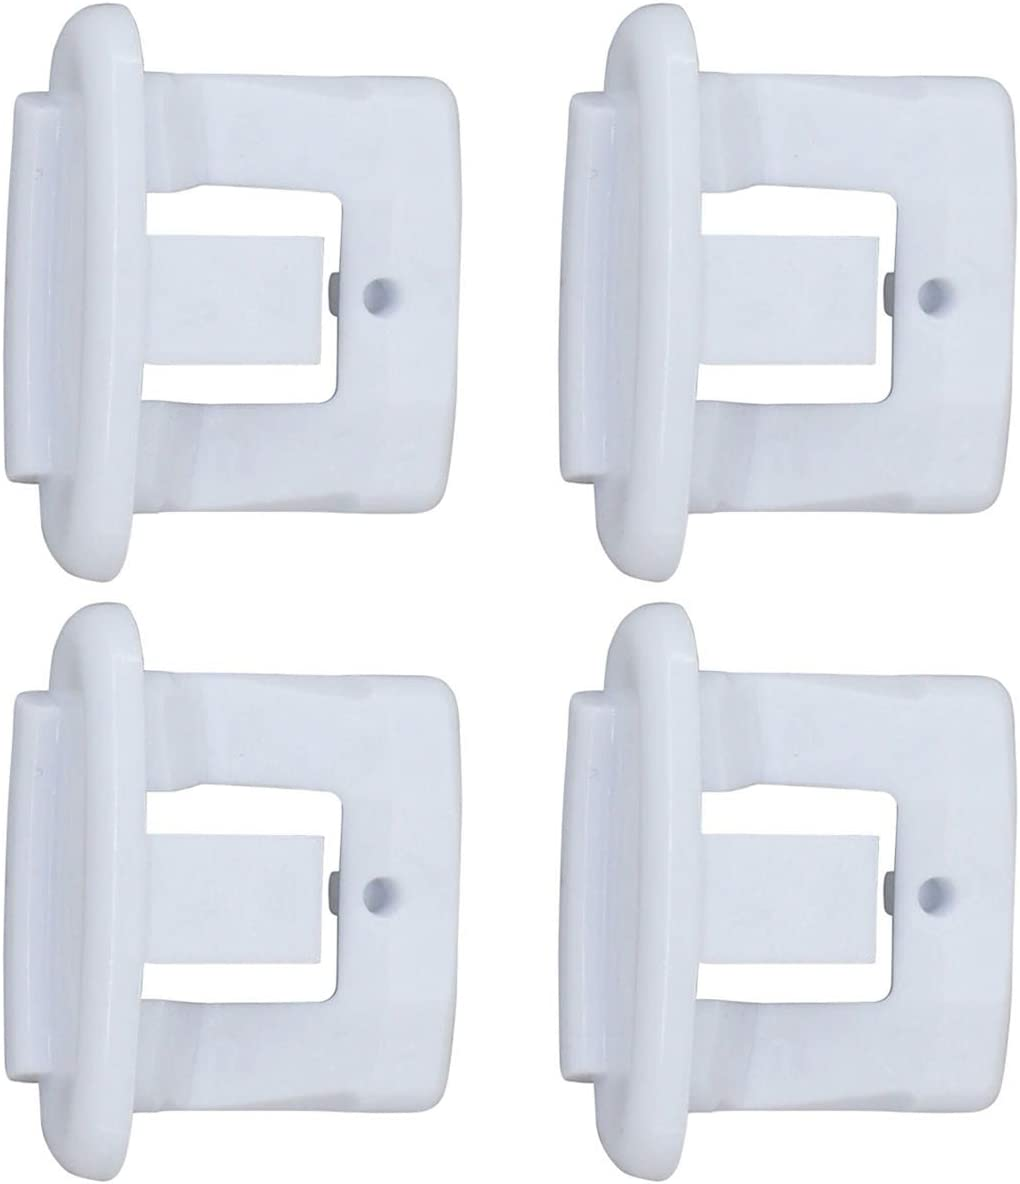 ApplianPar WD12X10304 Dishwasher Top Upper Rack Rail Slide End Cap for General Electric Kenmore Hotpoint Replace WD12X344 AP4484666 PS2370502 Pack of 4